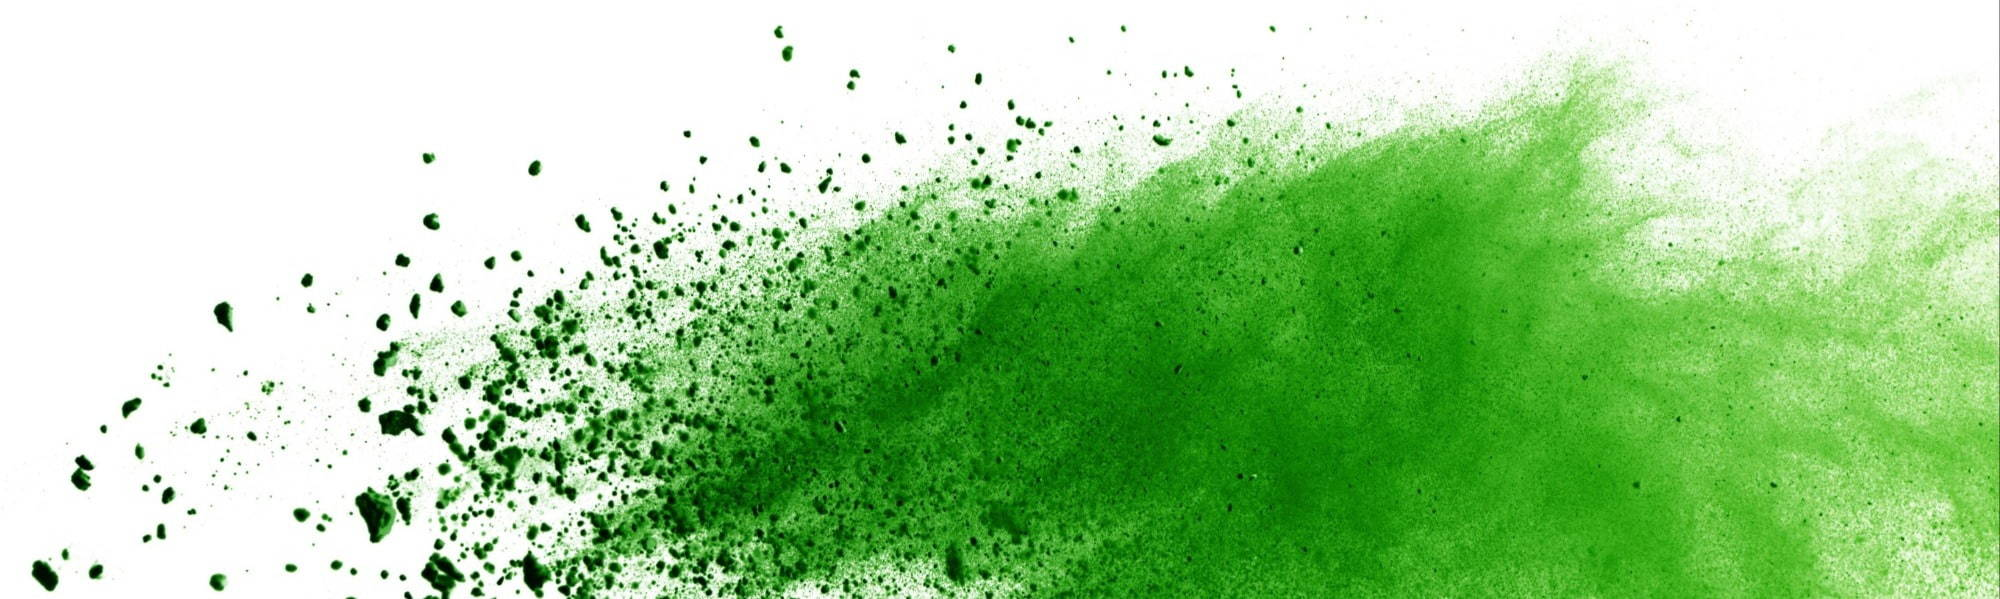 Abstract paint-splash image (Green)